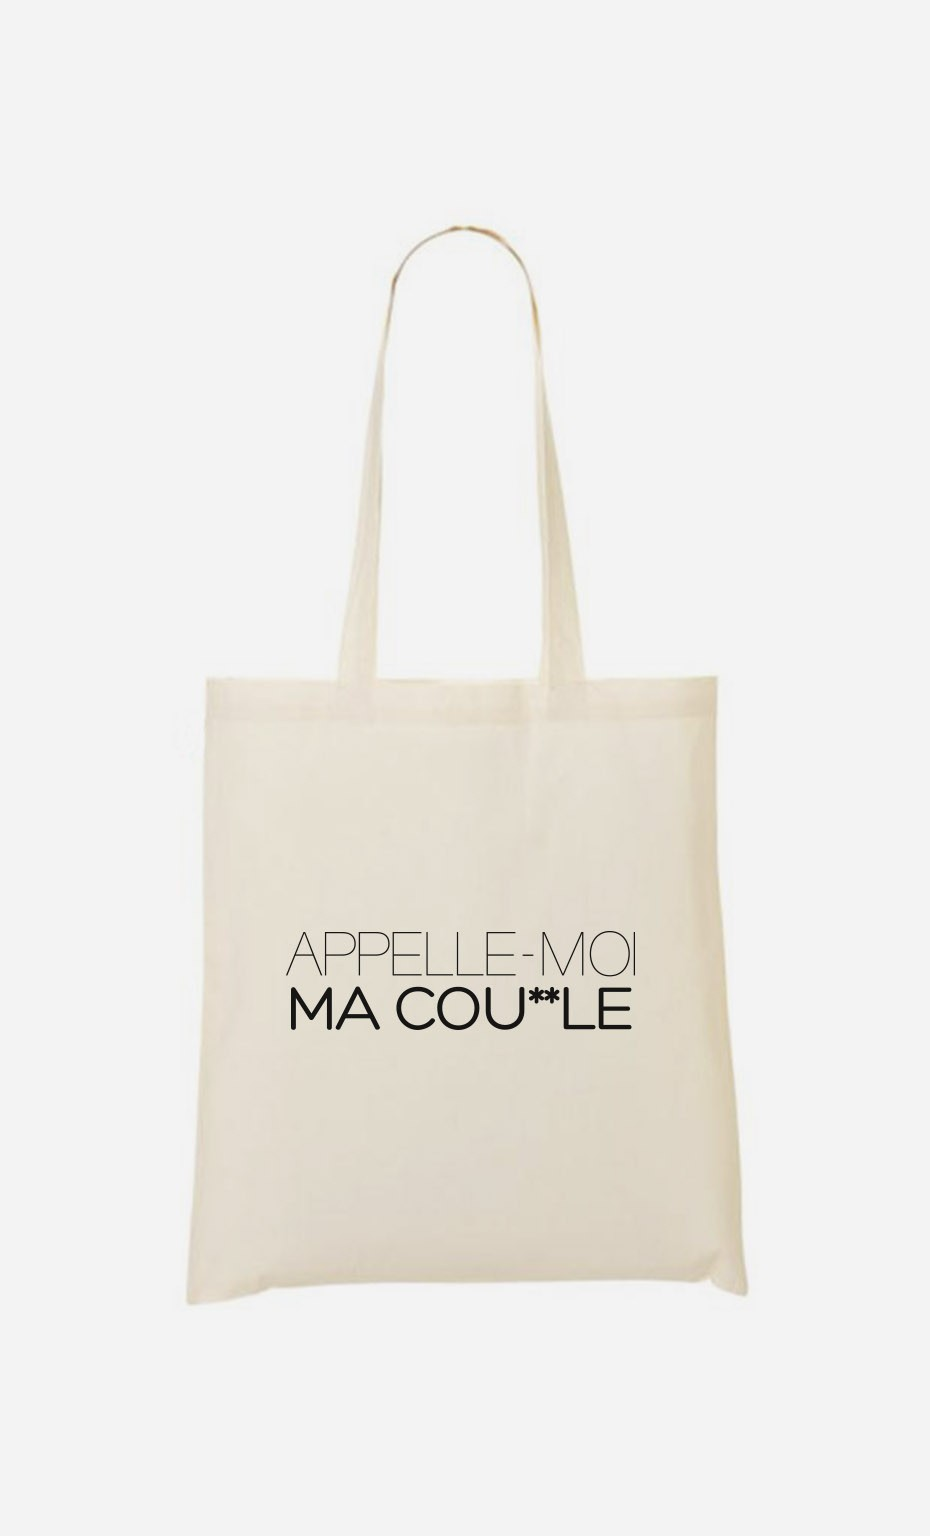 Tote Bag Appelle-Moi Ma Cou*lle